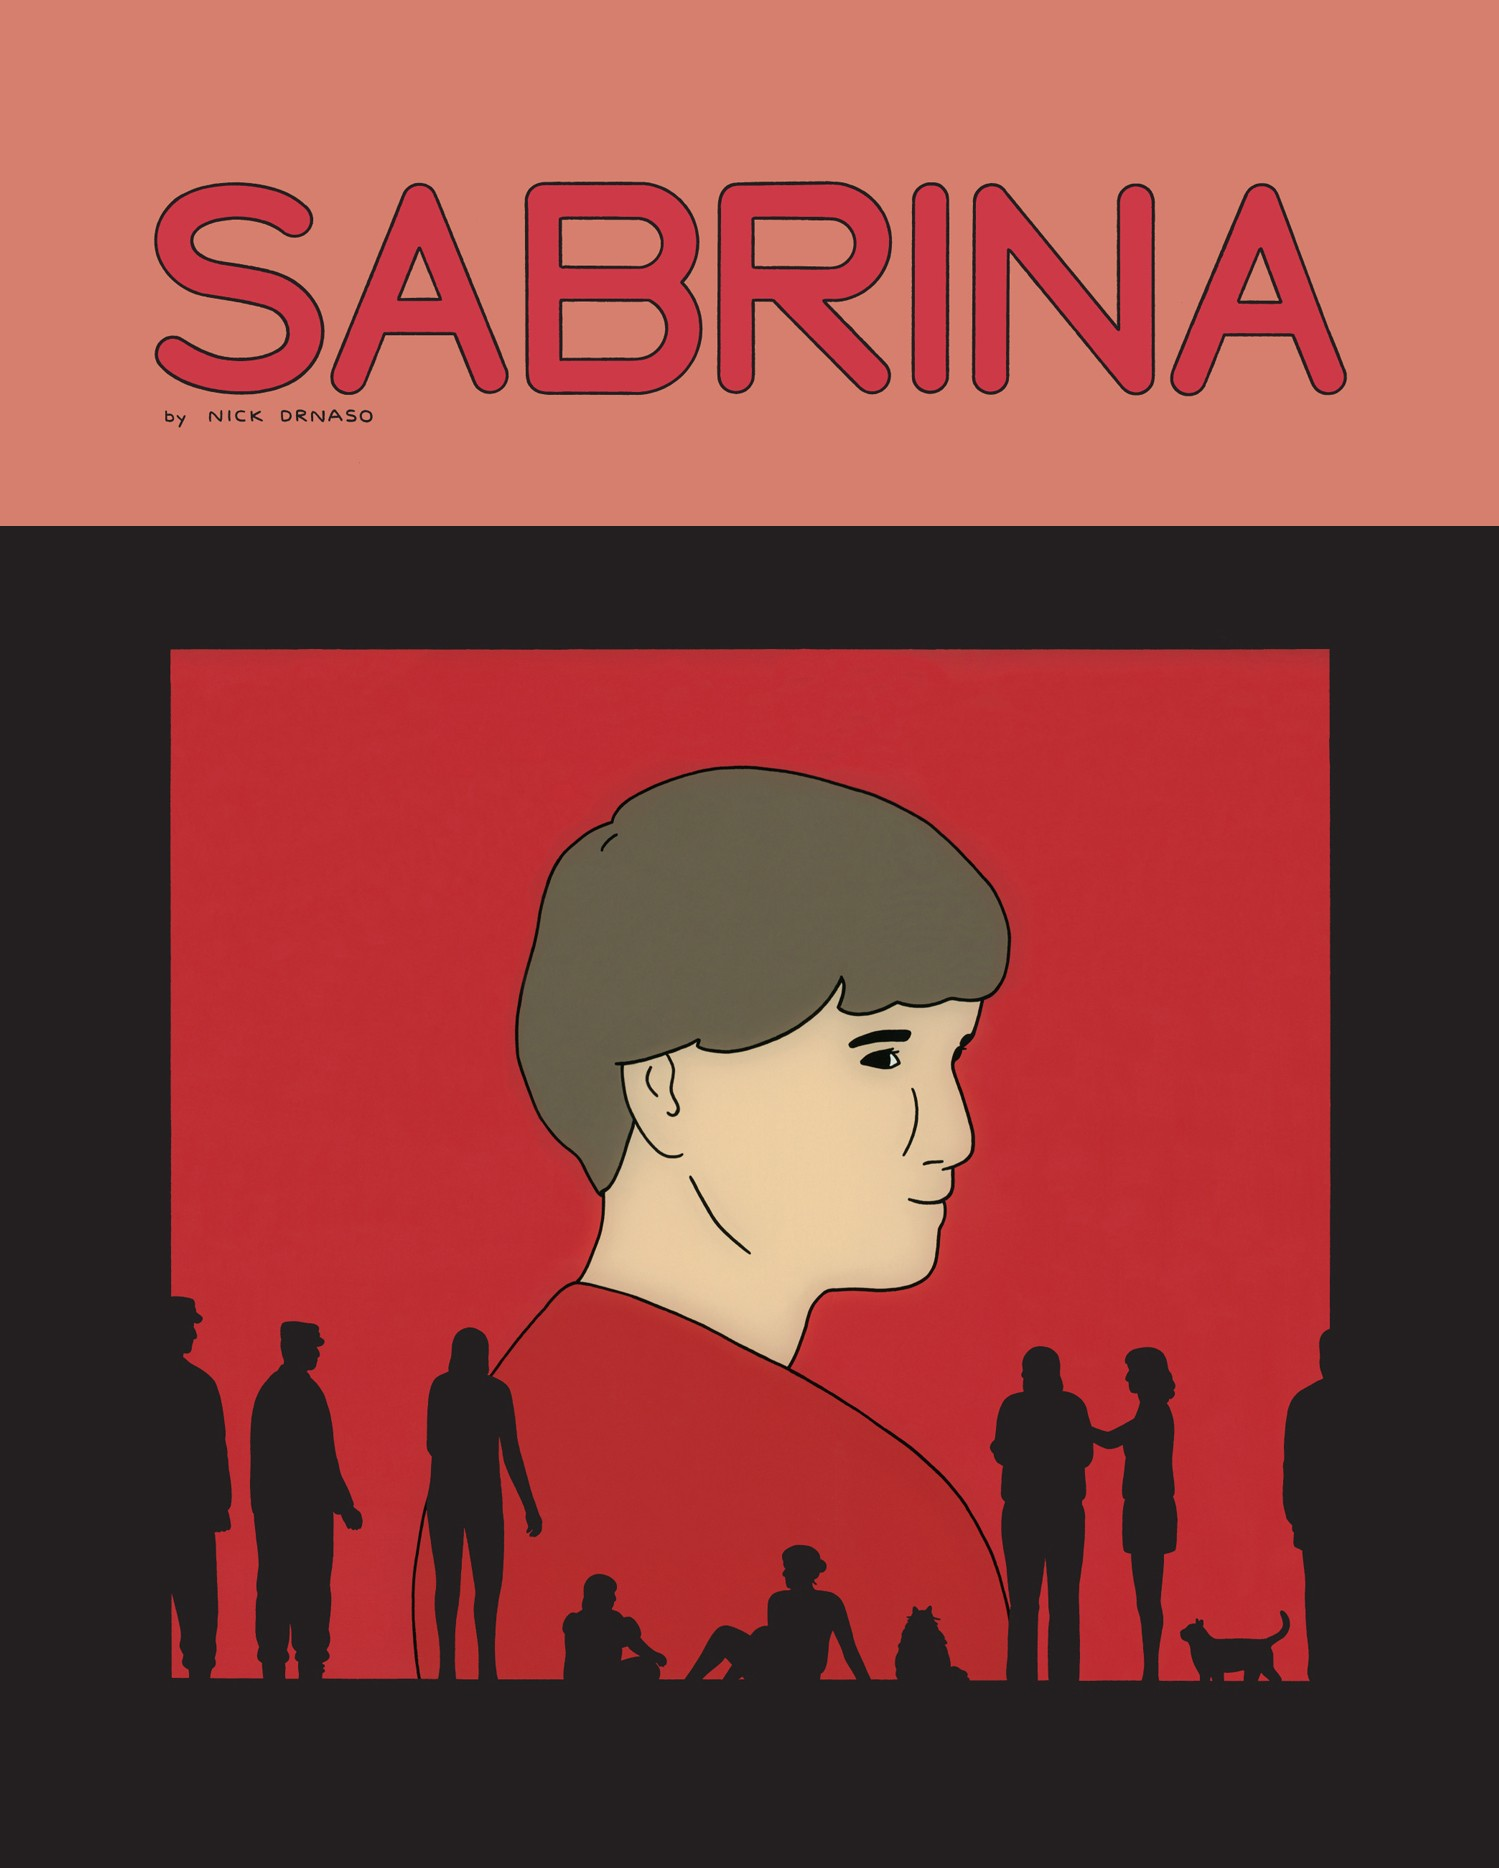 For the first time, a graphic novel makes the longlist for